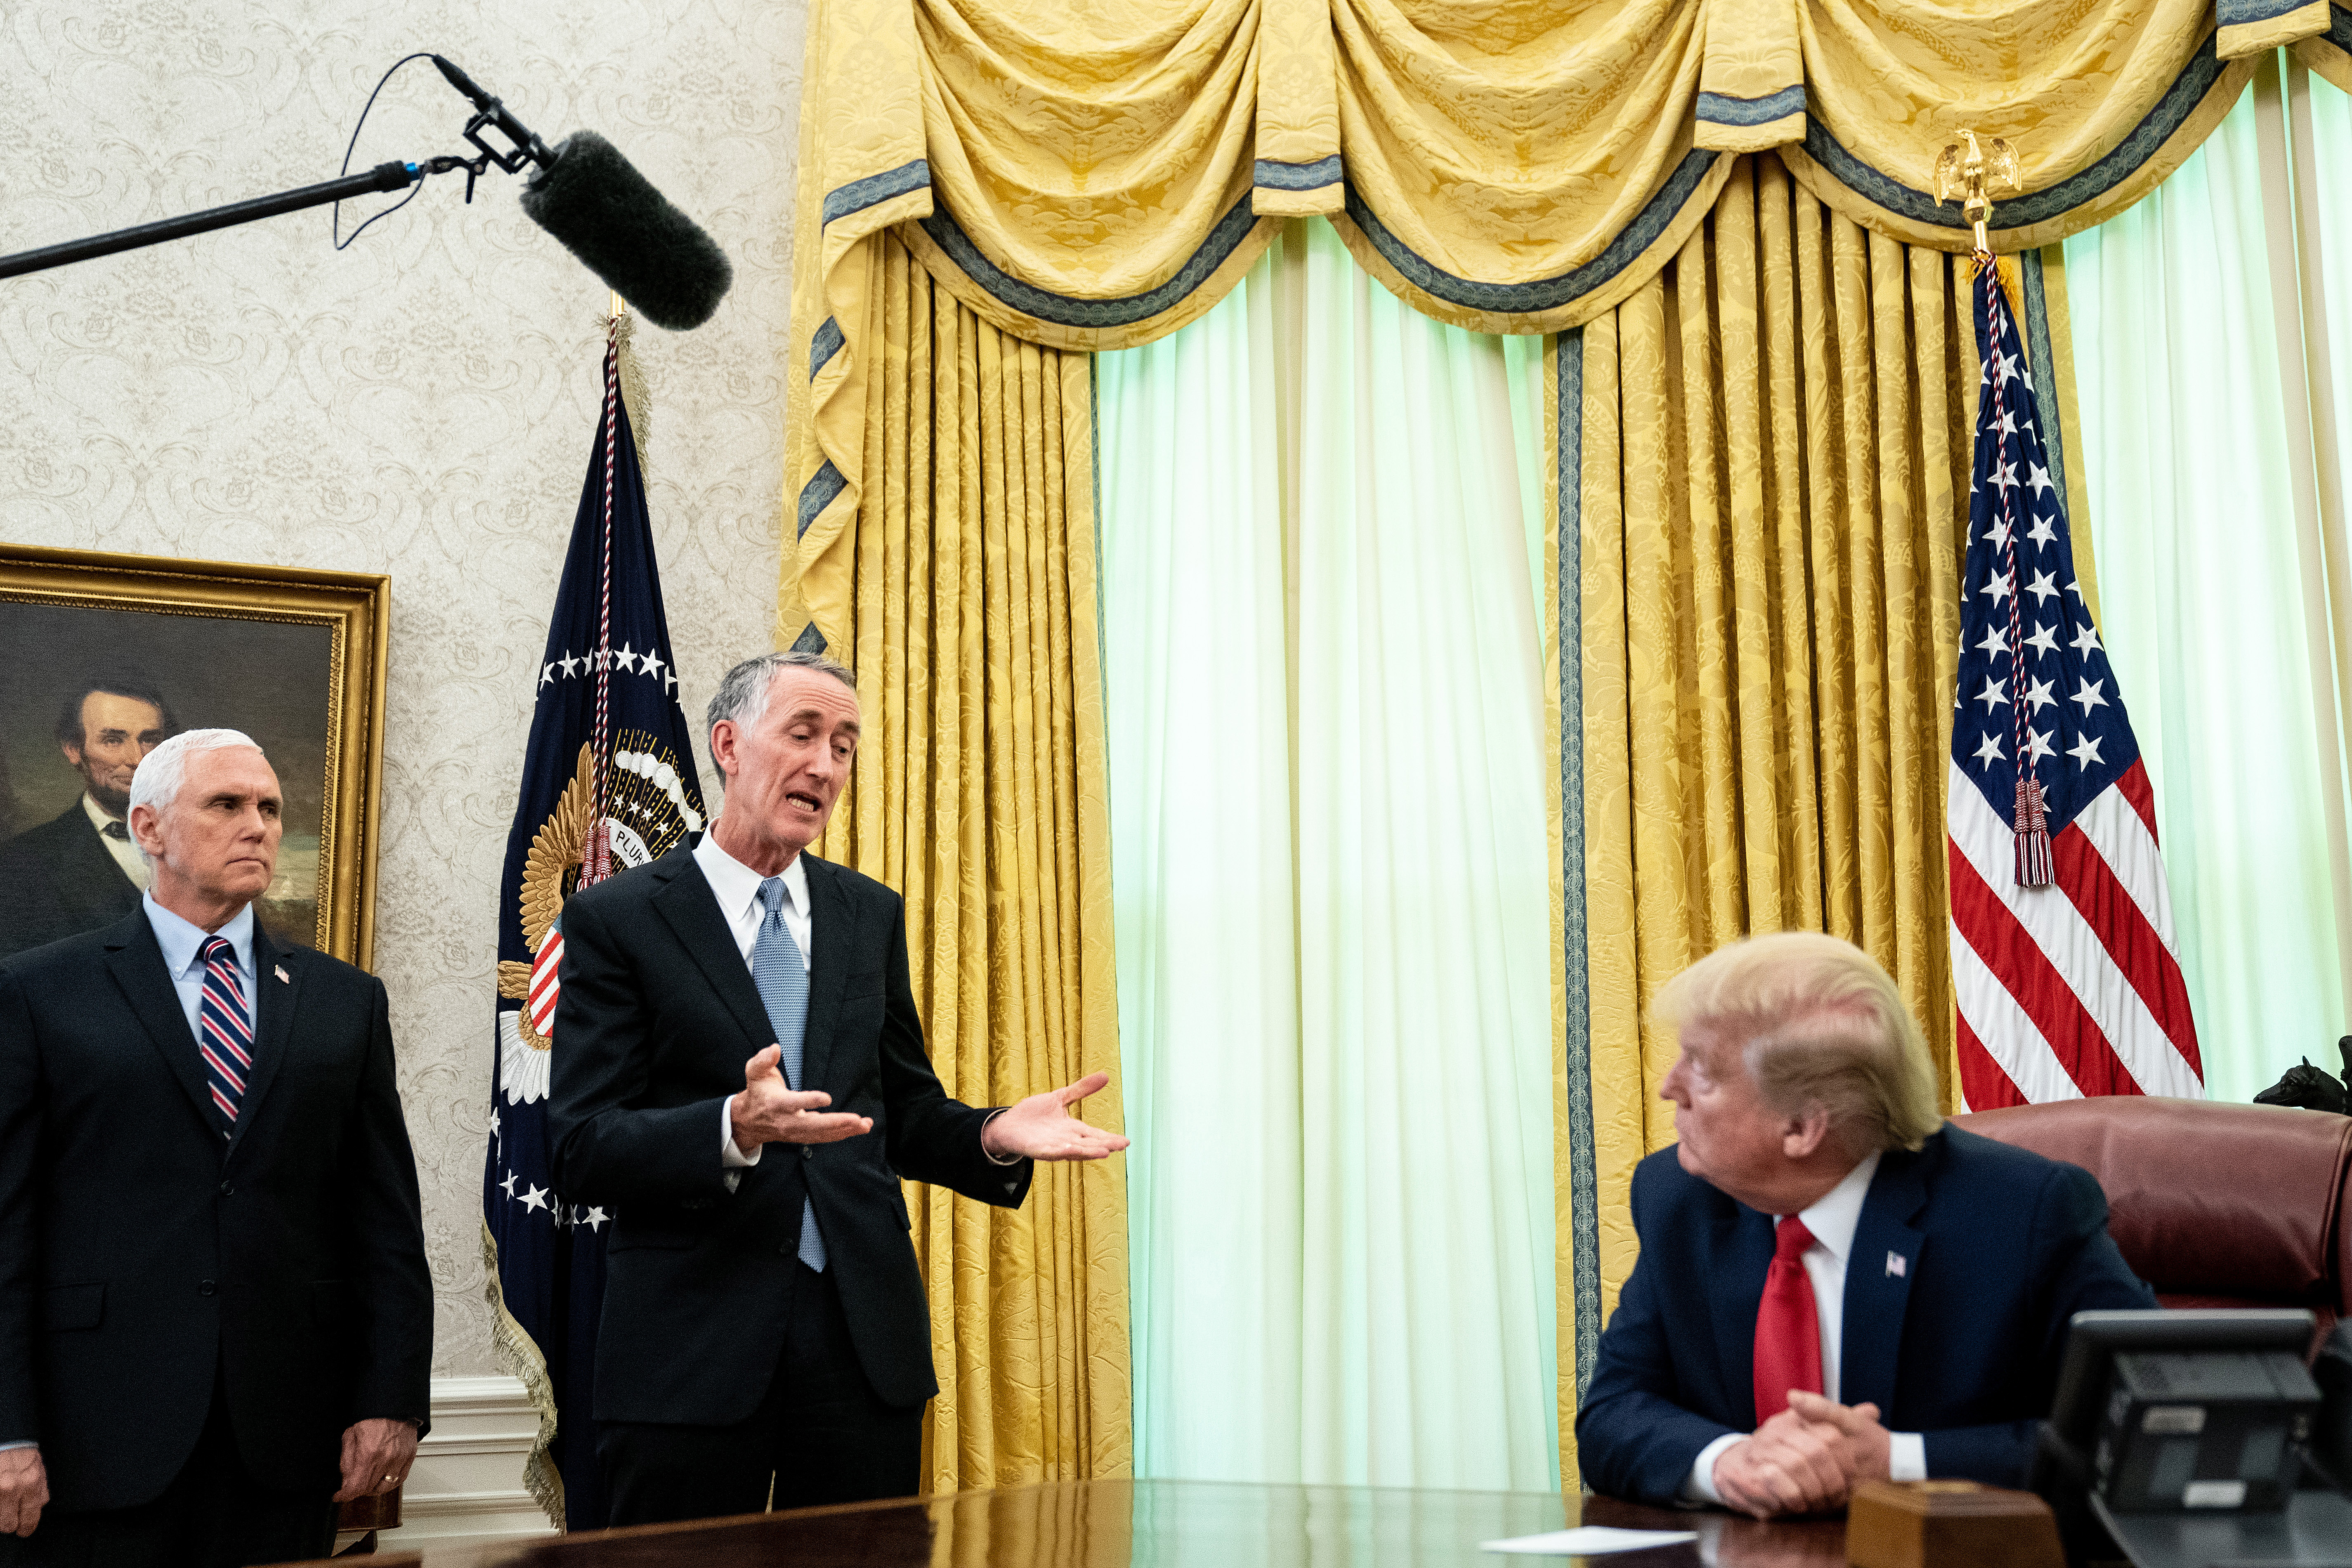 U.S. President Donald Trump is joined by Gilead Sciences Chairman and CEO Daniel O'Day and Vice President Mike Pence to announce that the Food and Drug Administration issued an emergency approval for the antiviral drug remdesivir in the Oval Office at the White House on May 1, 2020. (Photo: Erin Schaff-Pool/Getty Images)